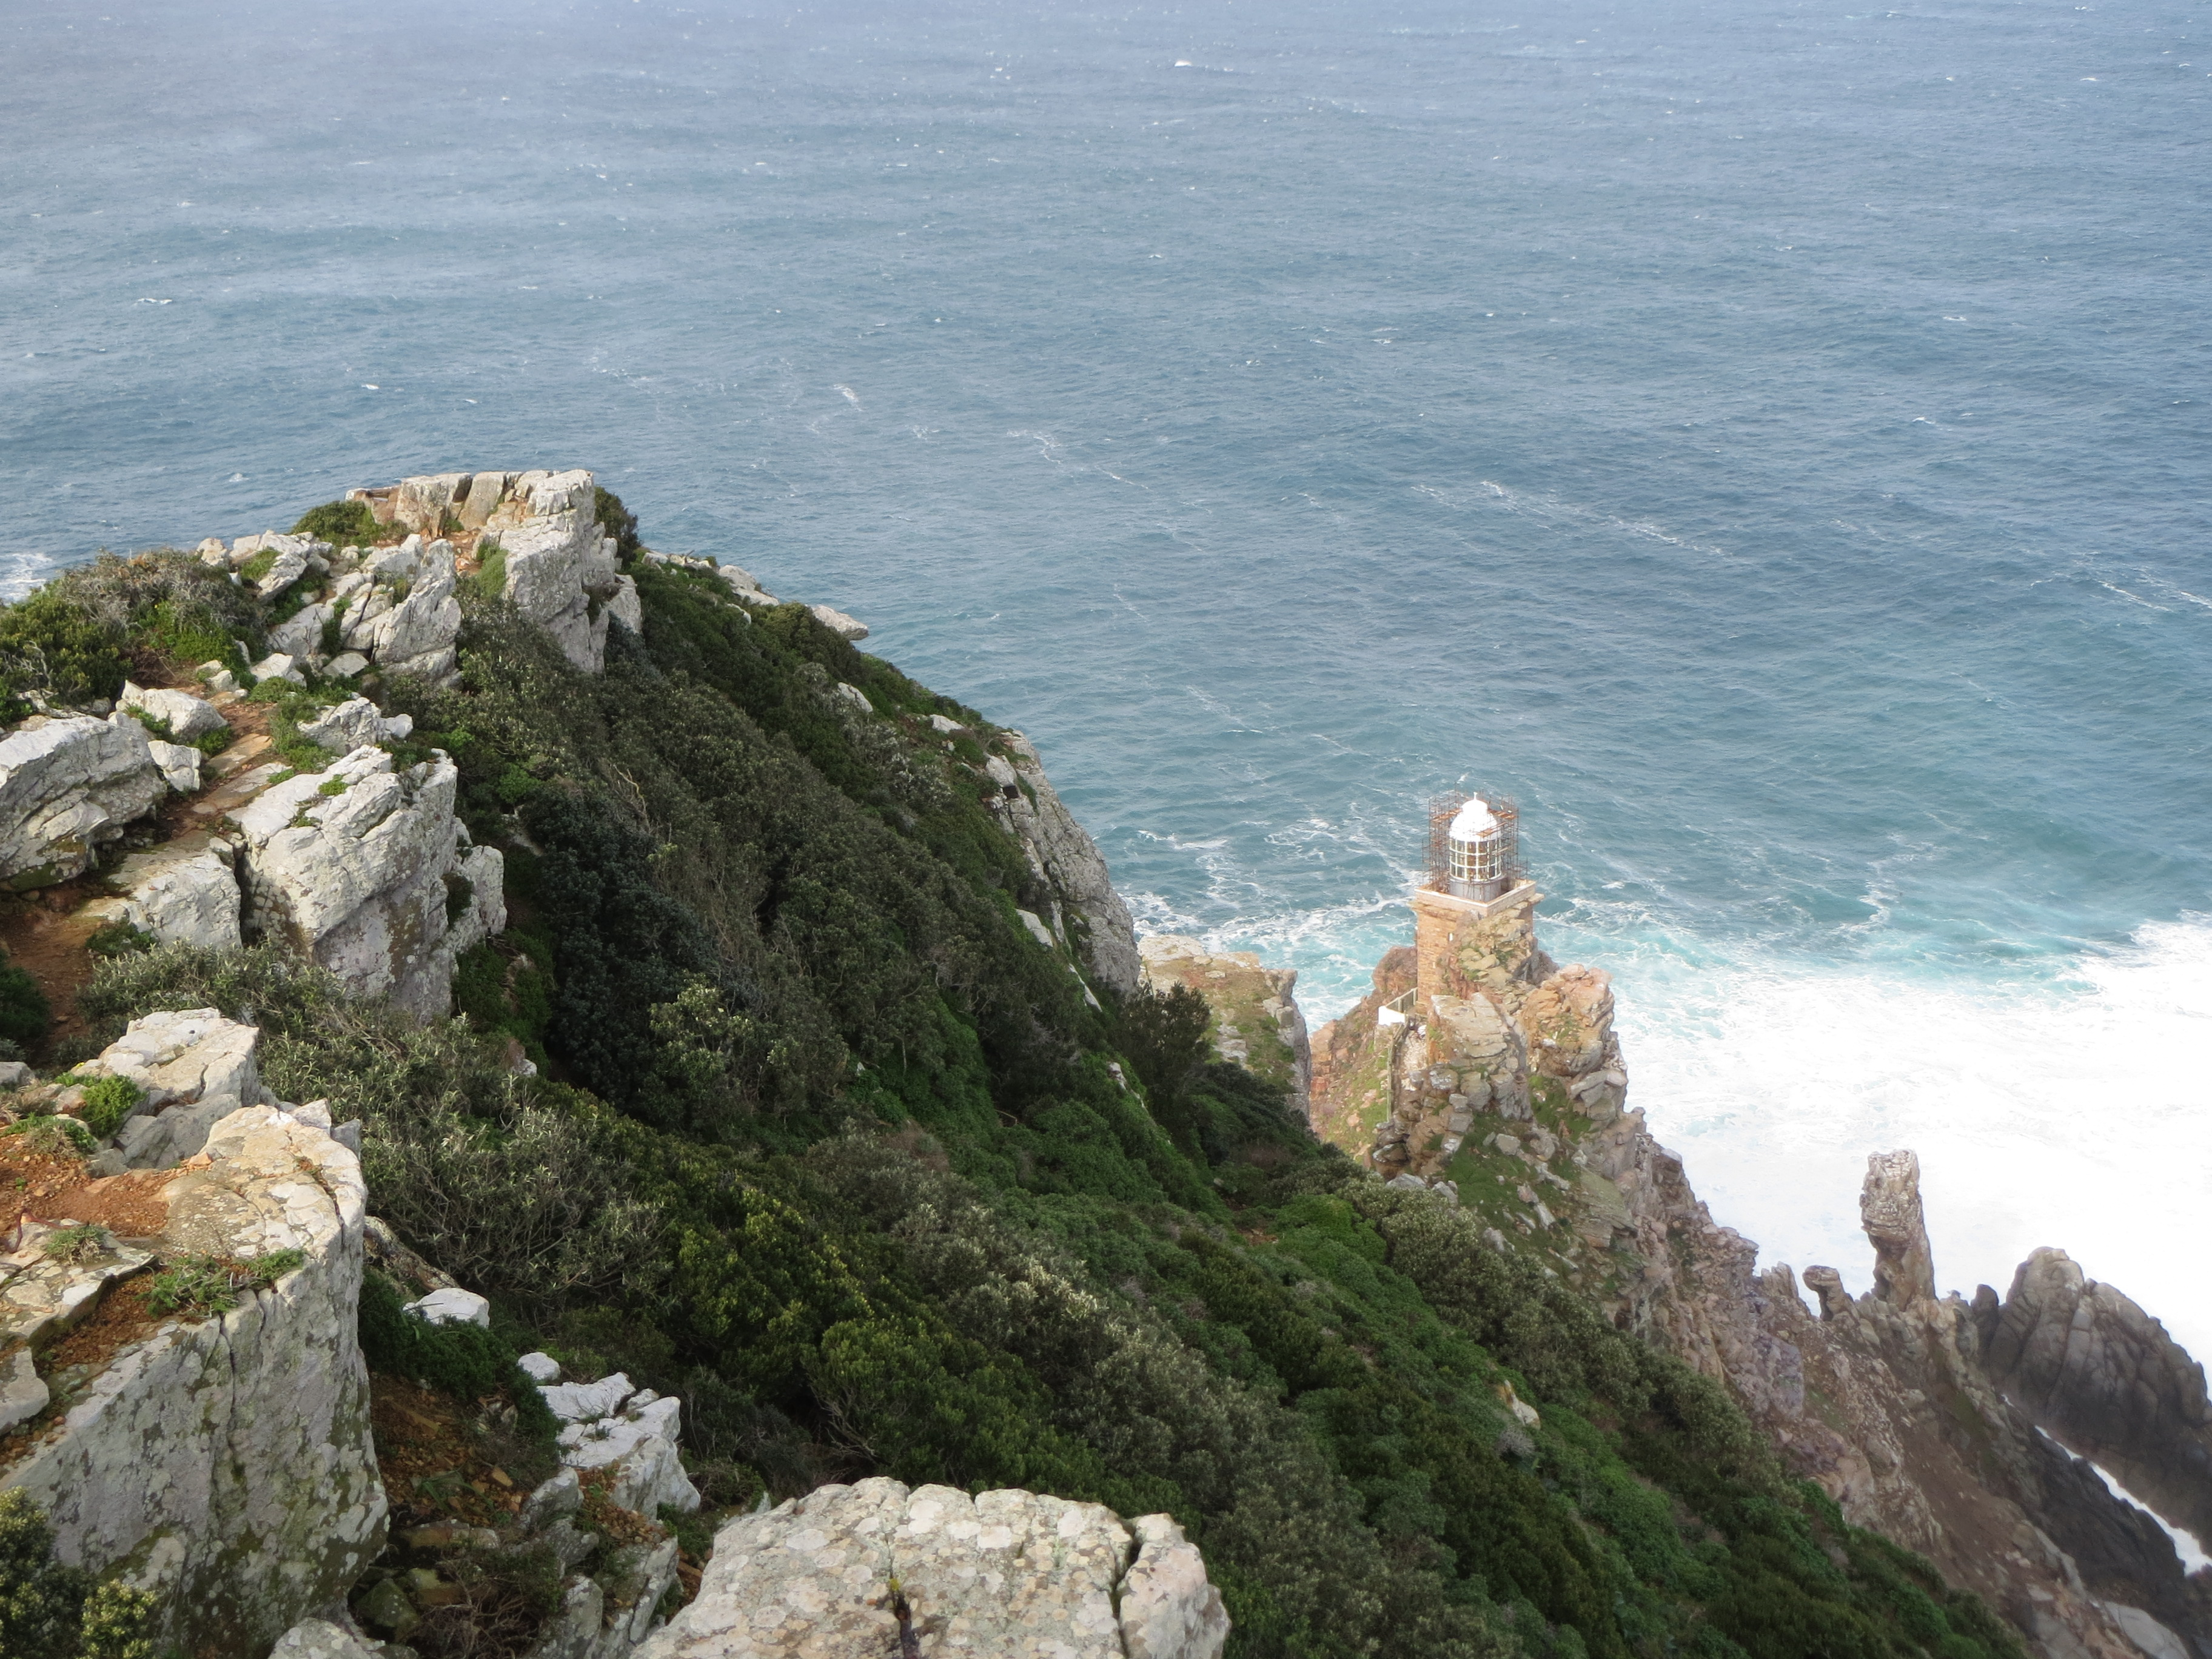 View from the cliff, Cape Point, South Africa. Photo: Francis de los Reyes (after liquid discharge)